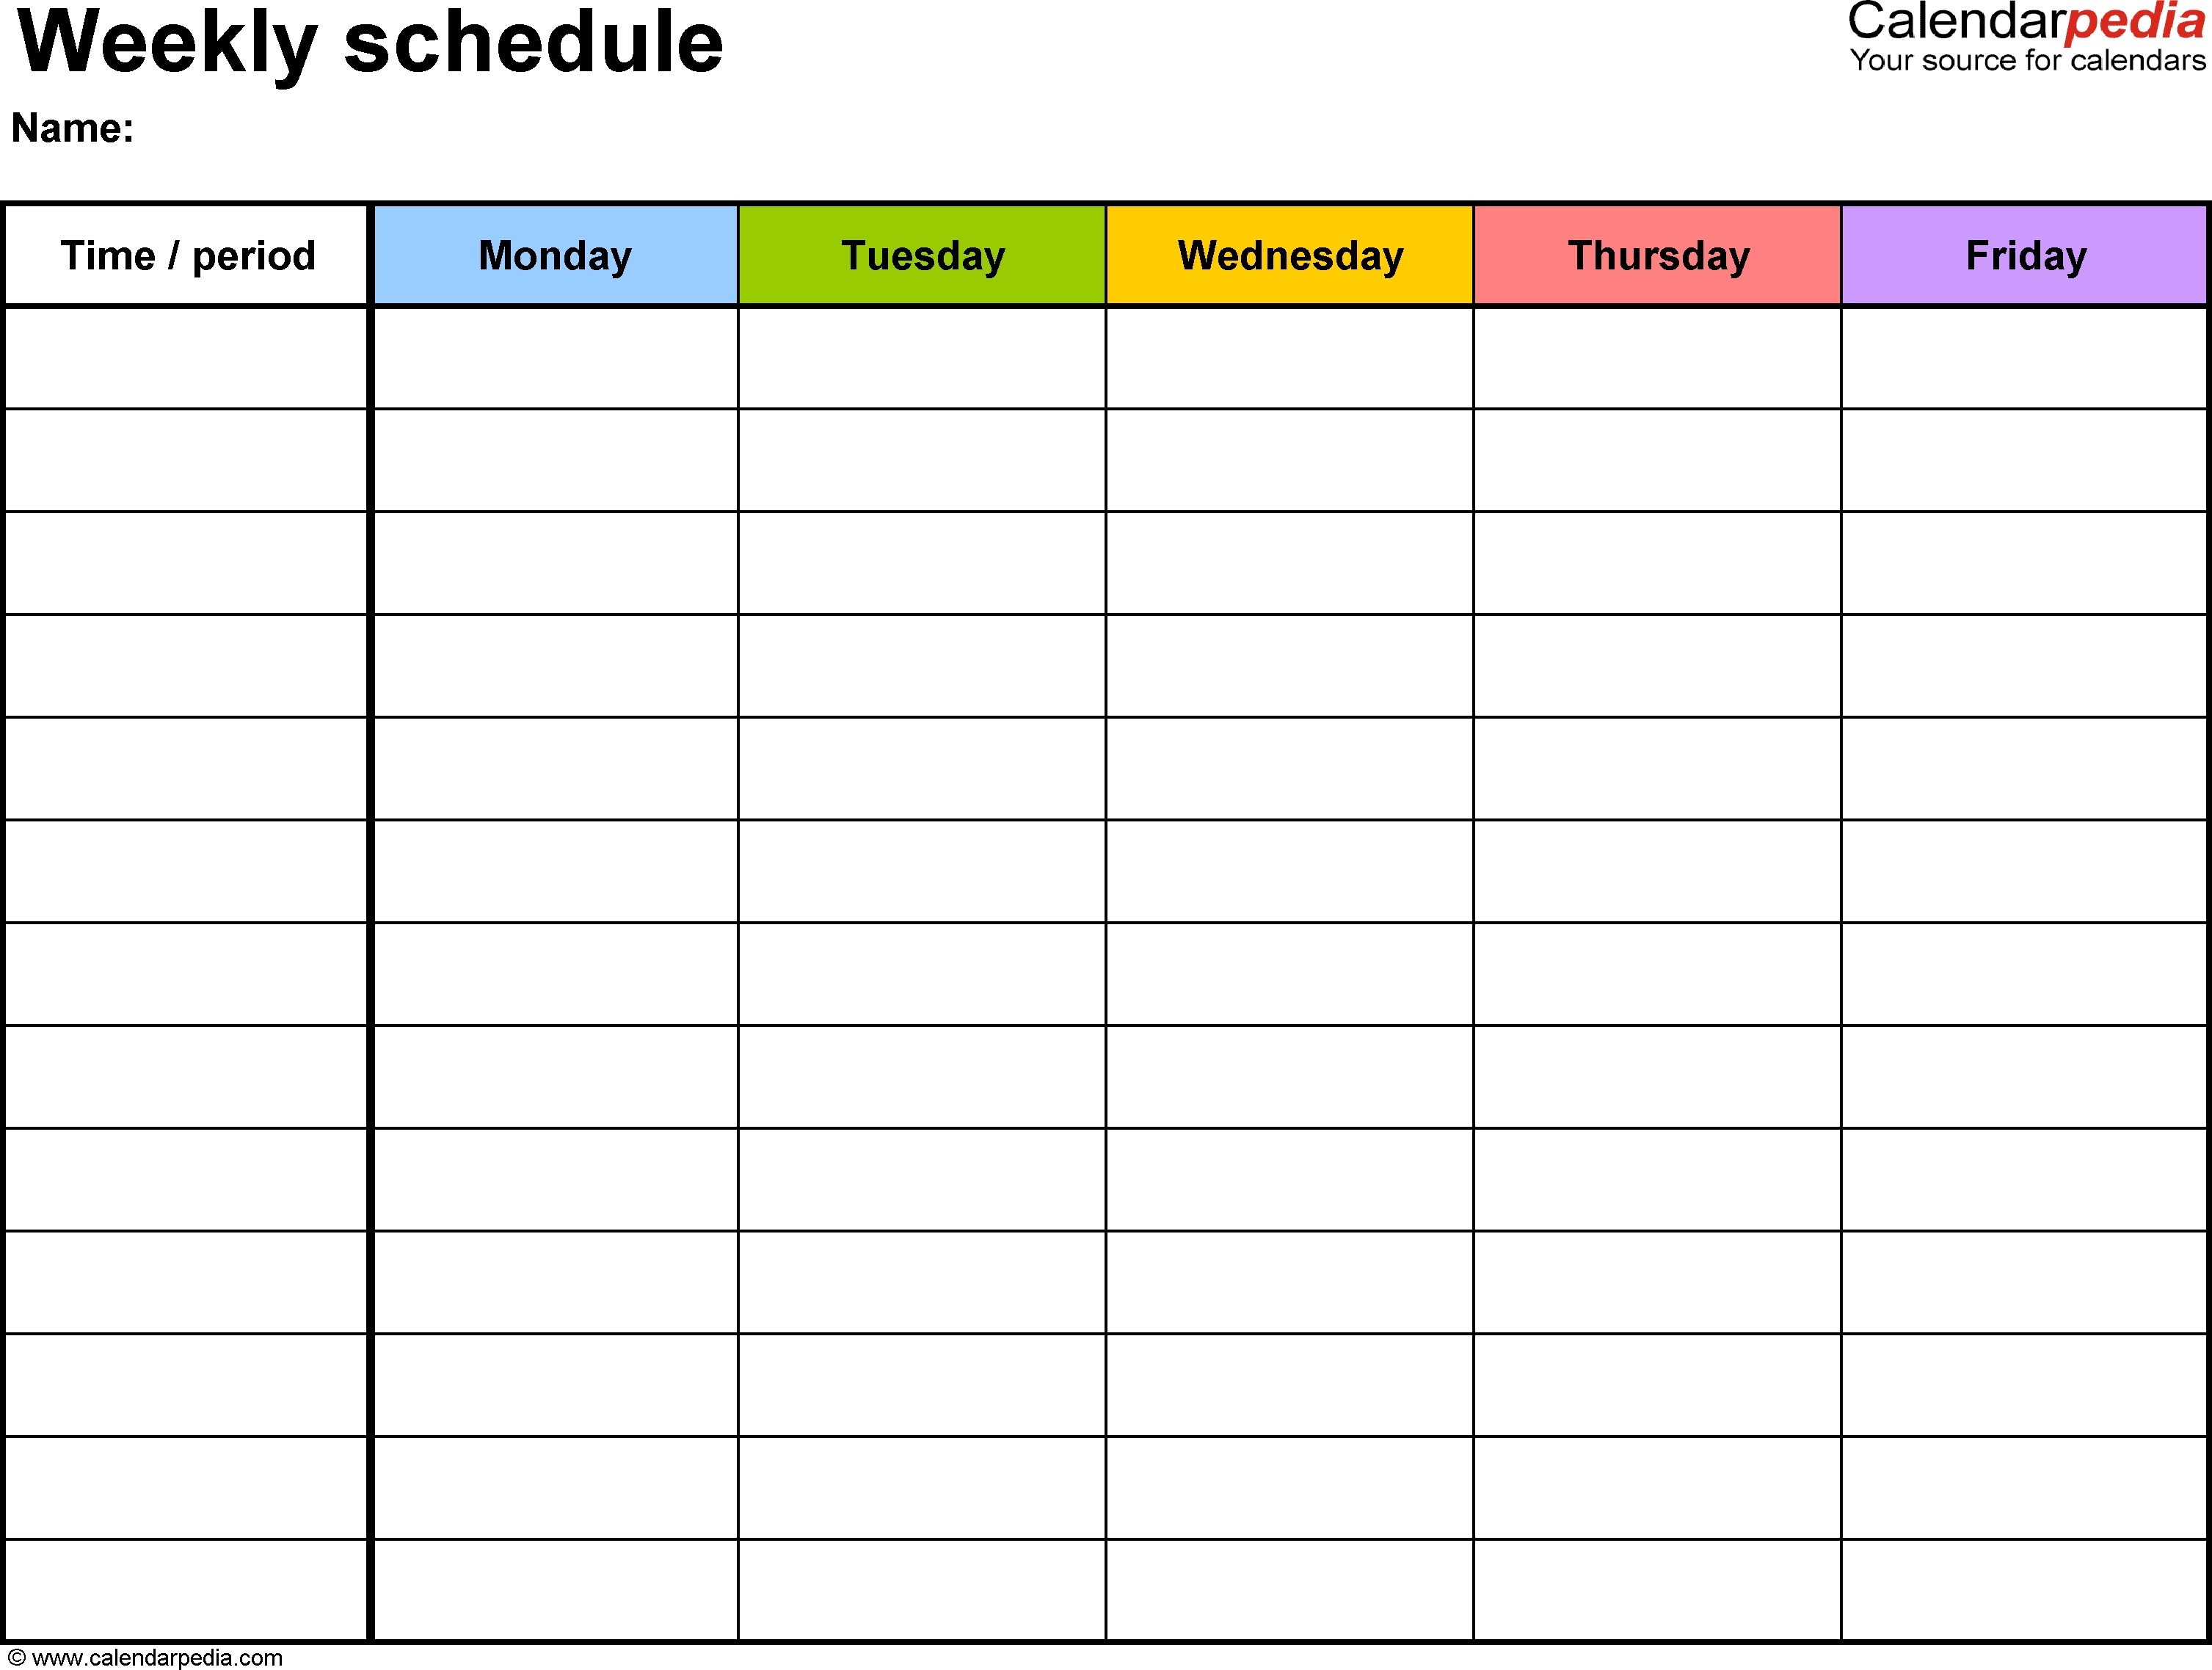 Free Weekly Schedule Templates For Word - 18 Templates within Microsoft Calendar Template Five Day